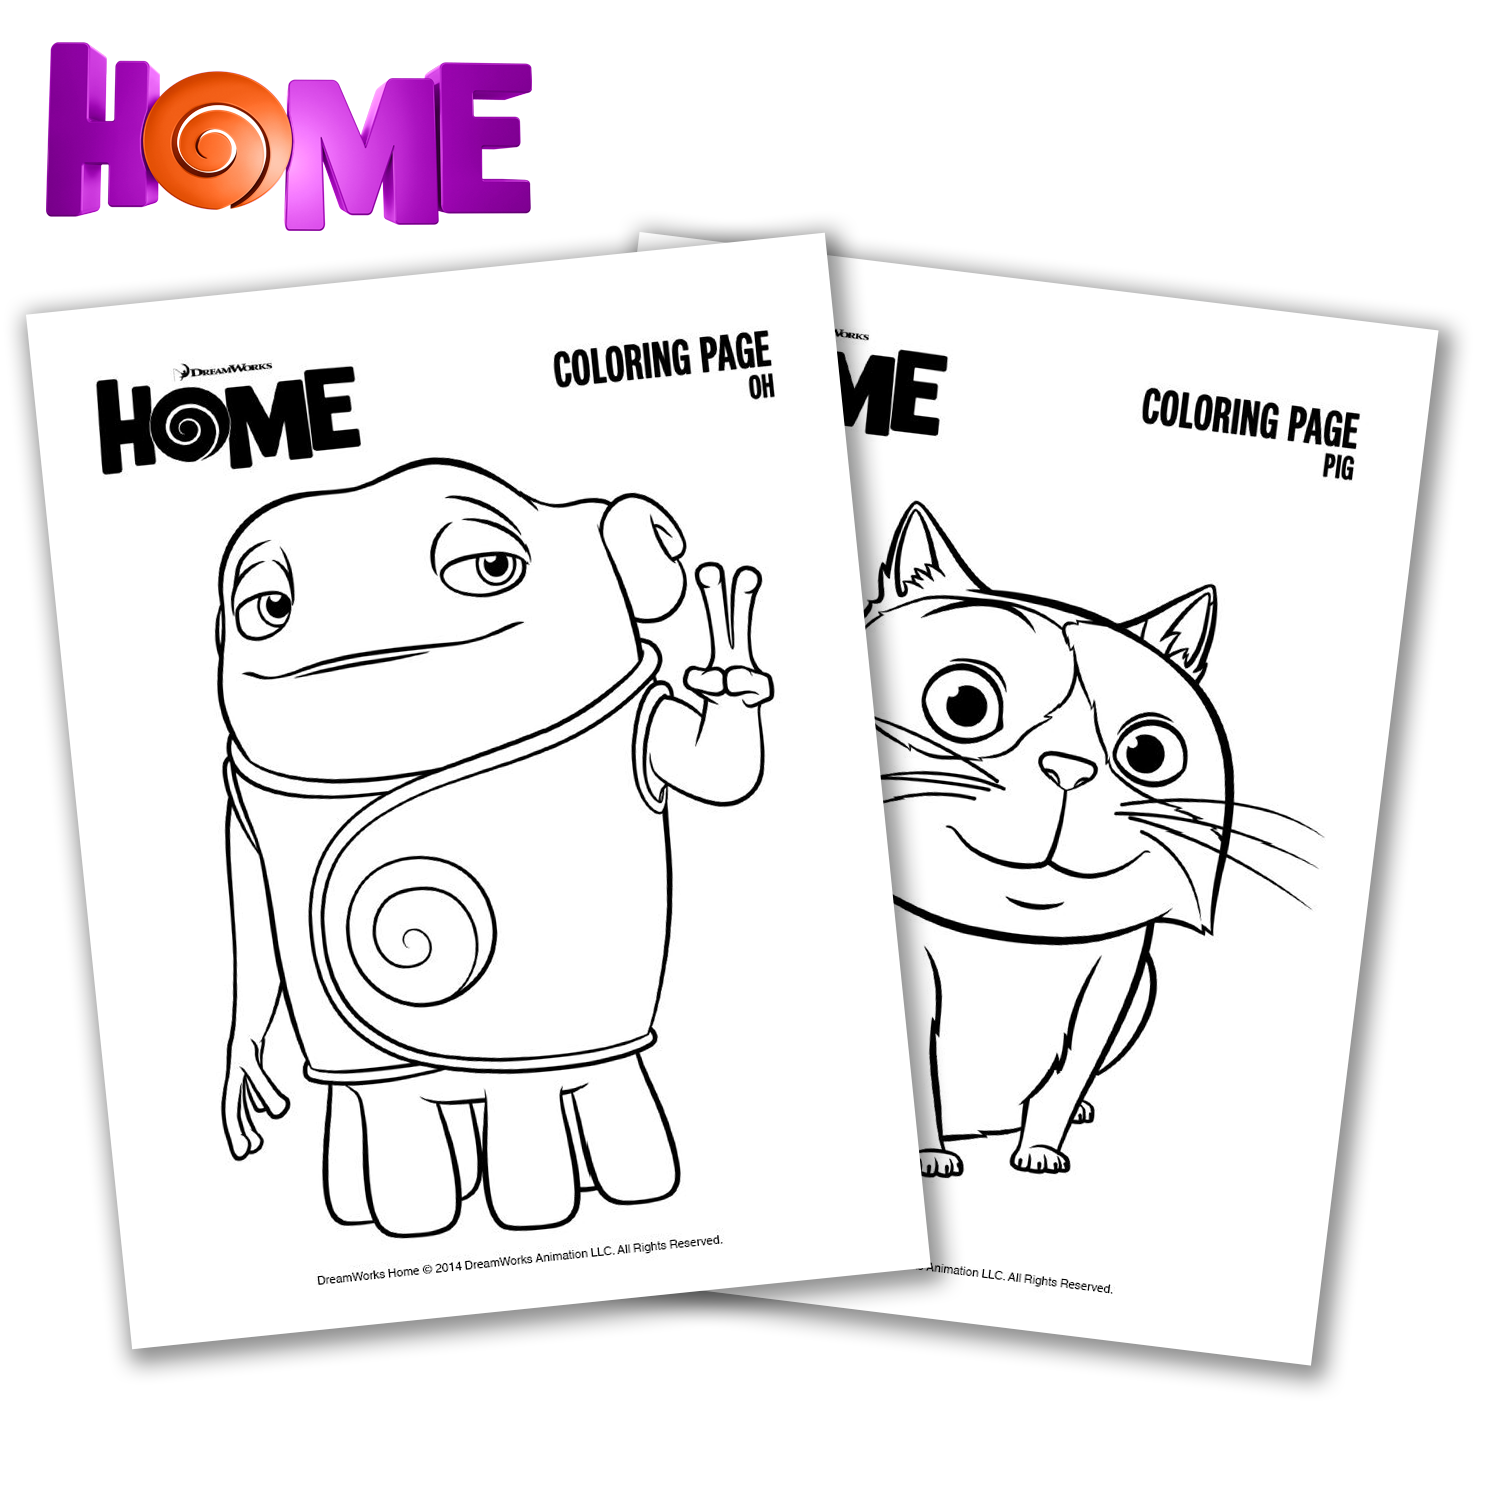 4 Images of Home From The Movie Coloring Pages Printable